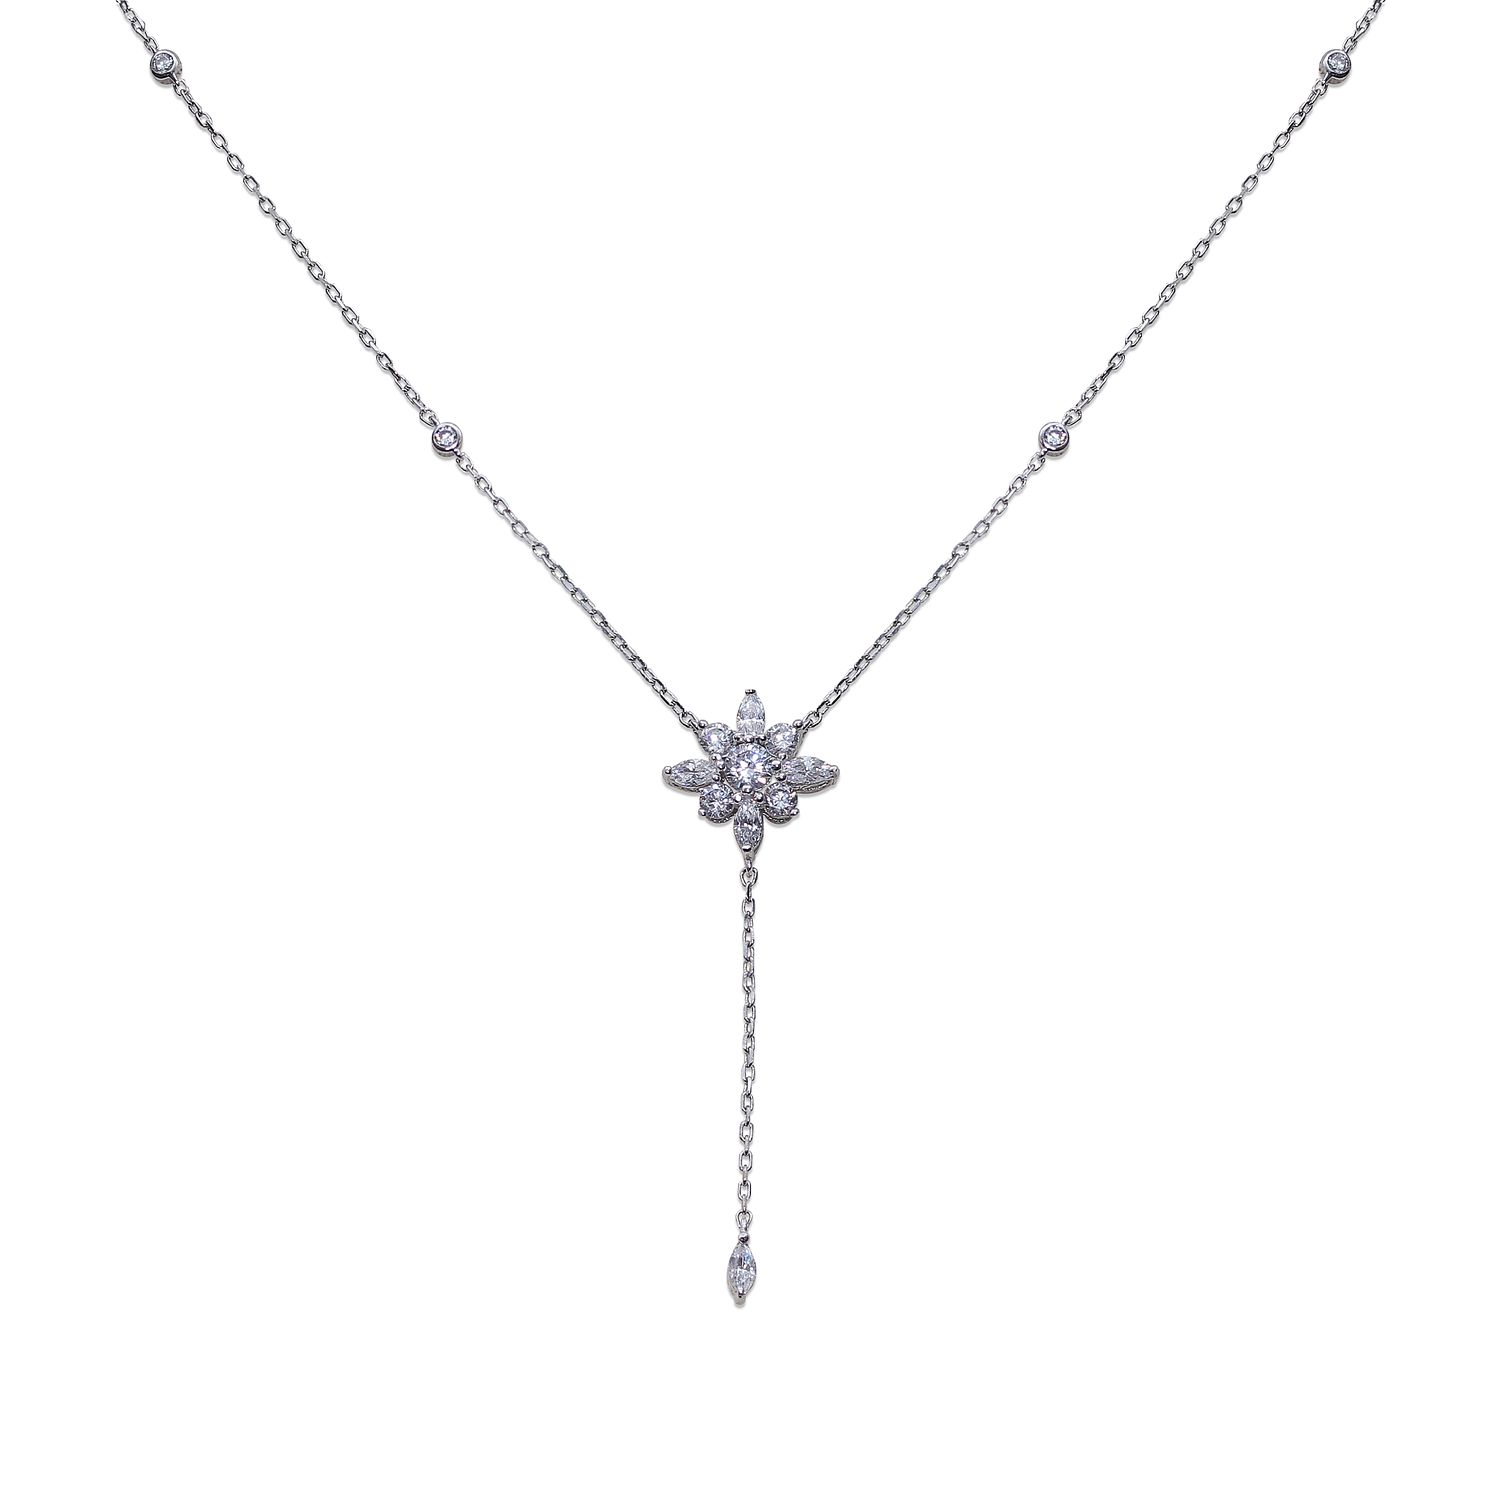 CARAT* LONDON Camelia Sterling Silver Drop Necklace - Product number 6957668